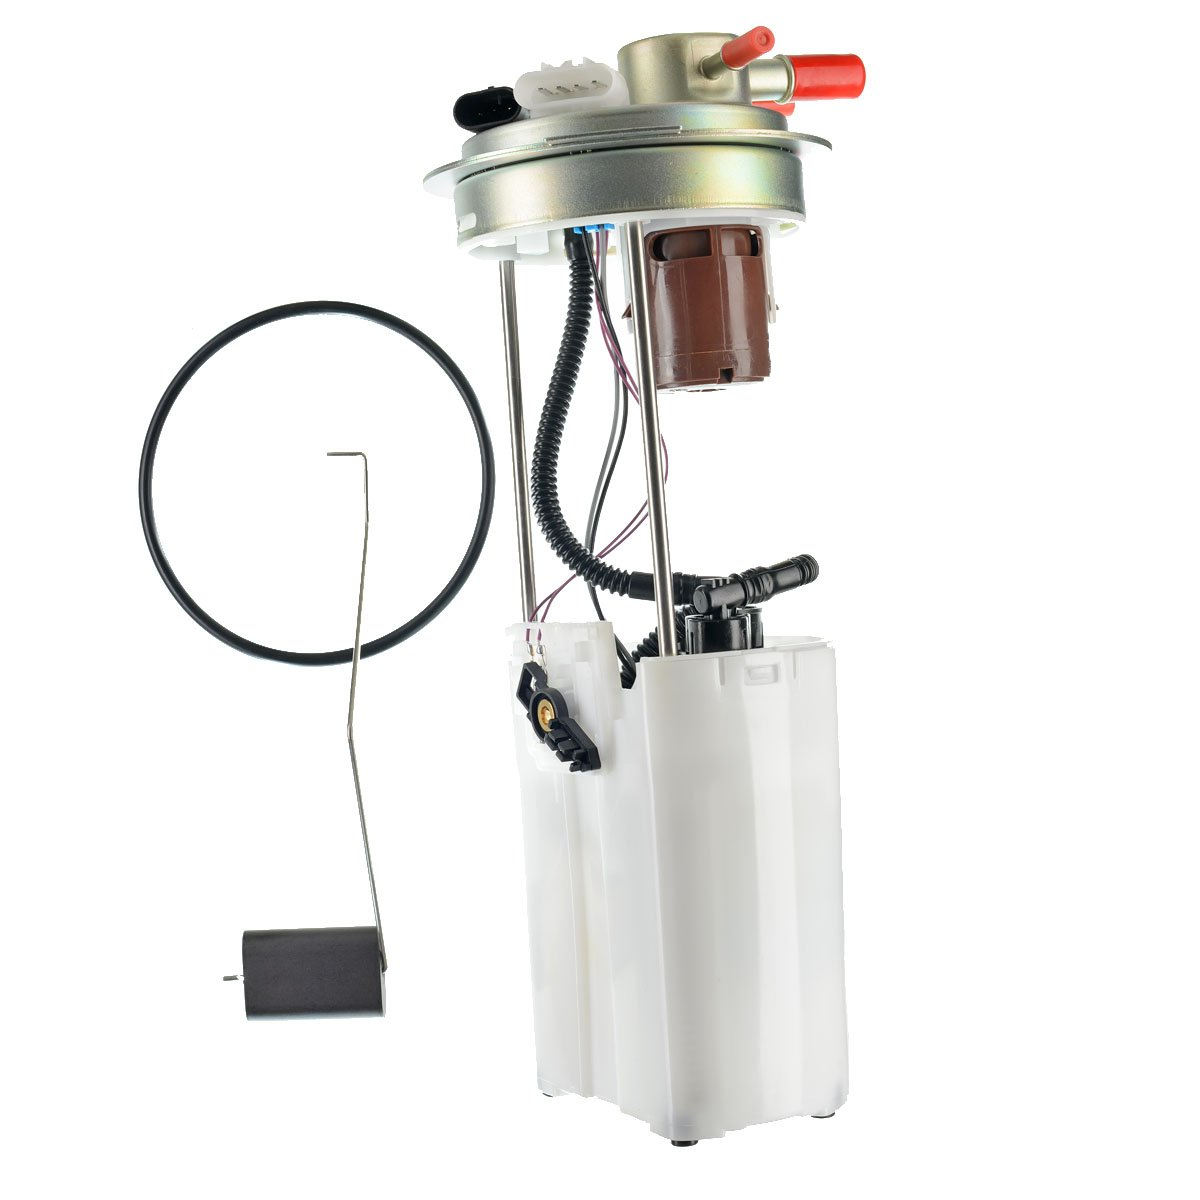 "A-Premium Electric Fuel Pump Module Assembly for Chevrolet Silverado 1500 GMC Sierra 1500 2500 HD 2004-2006 Classic 2007 standard or extended cab 78.0"" Bed"